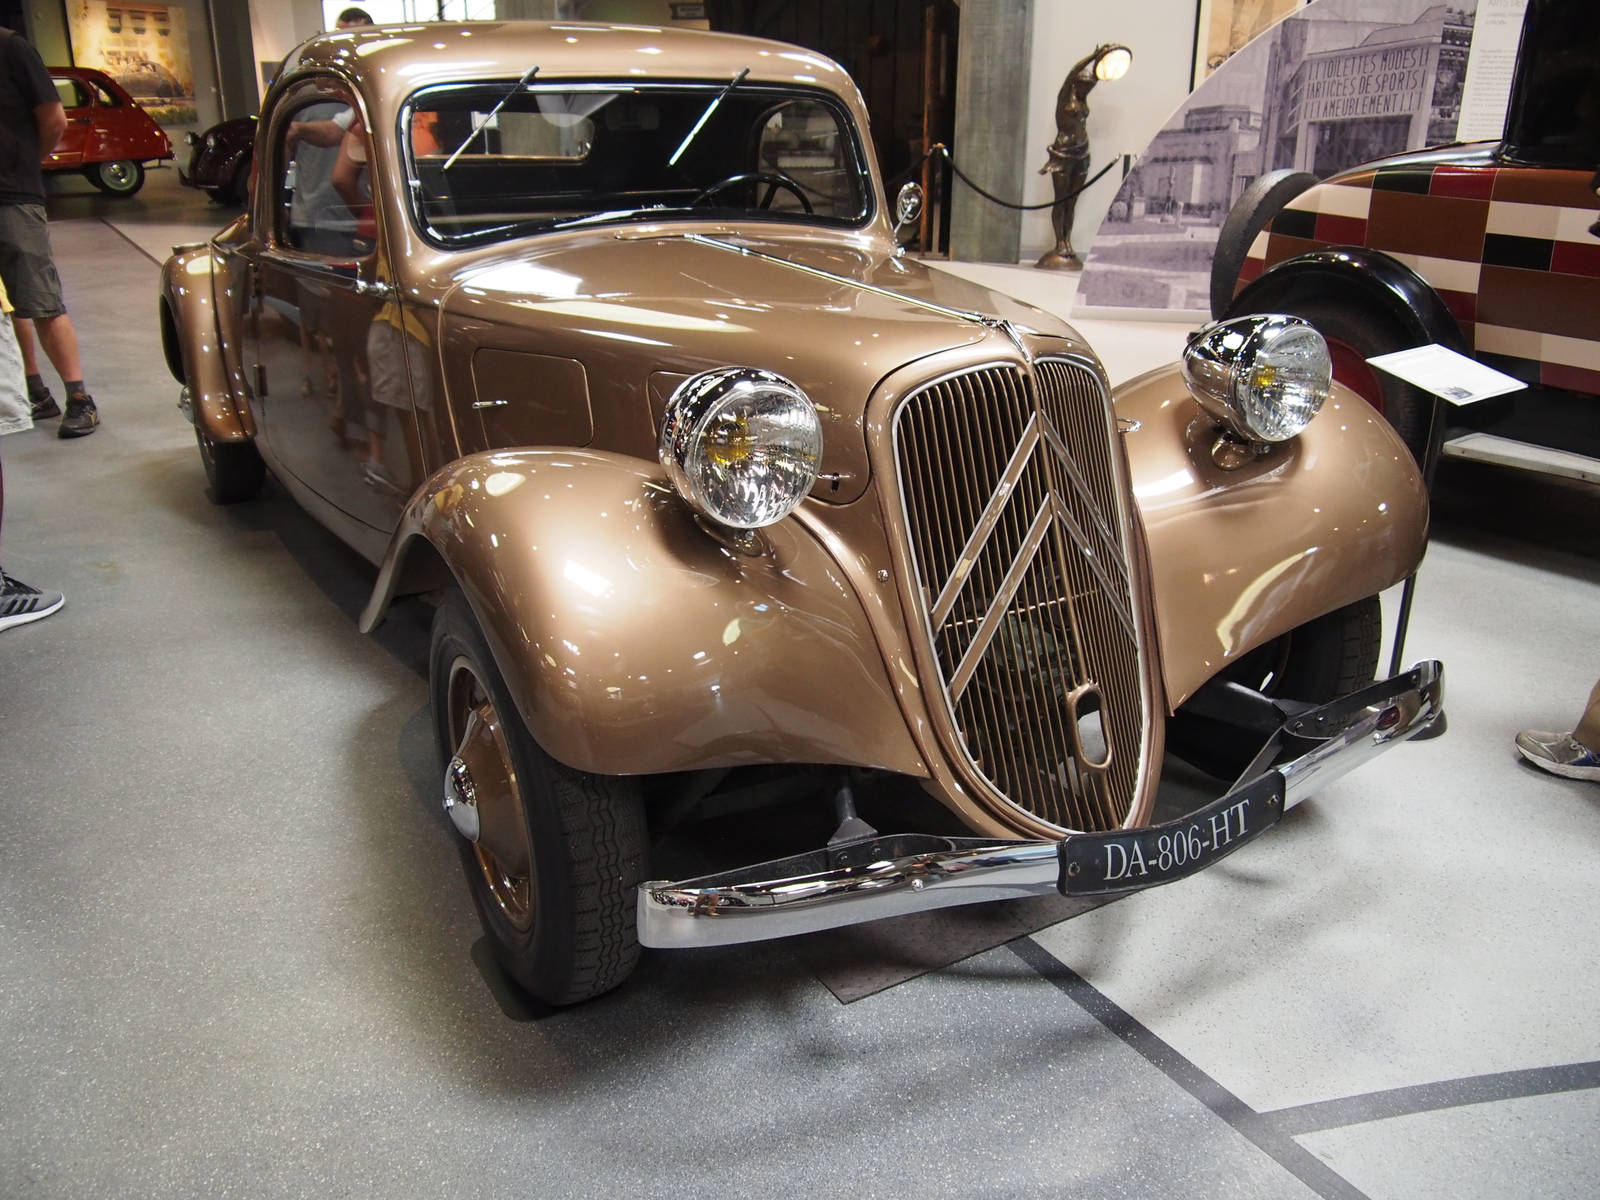 """1938 Citroën 11B Traction Avant Coupe. This is a rare, long wheelbase 11B """"Normal"""" with a rumble seat. The rumble seat TA coupes were only built before WWII."""